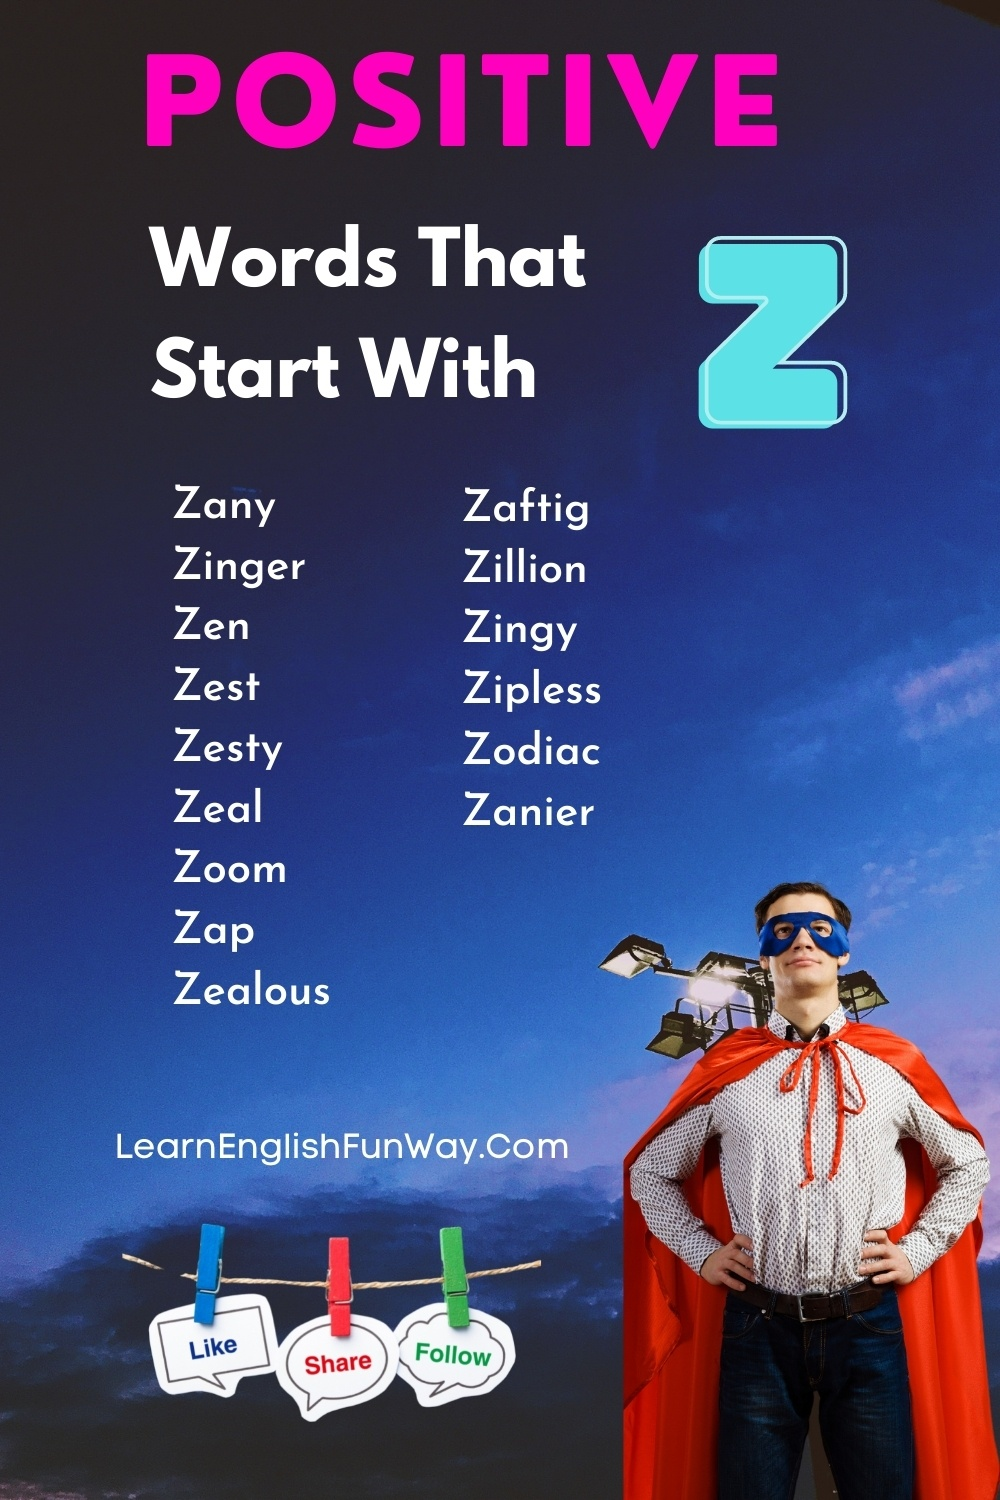 list of positive words that start with Z - Positive Words That Start With Z